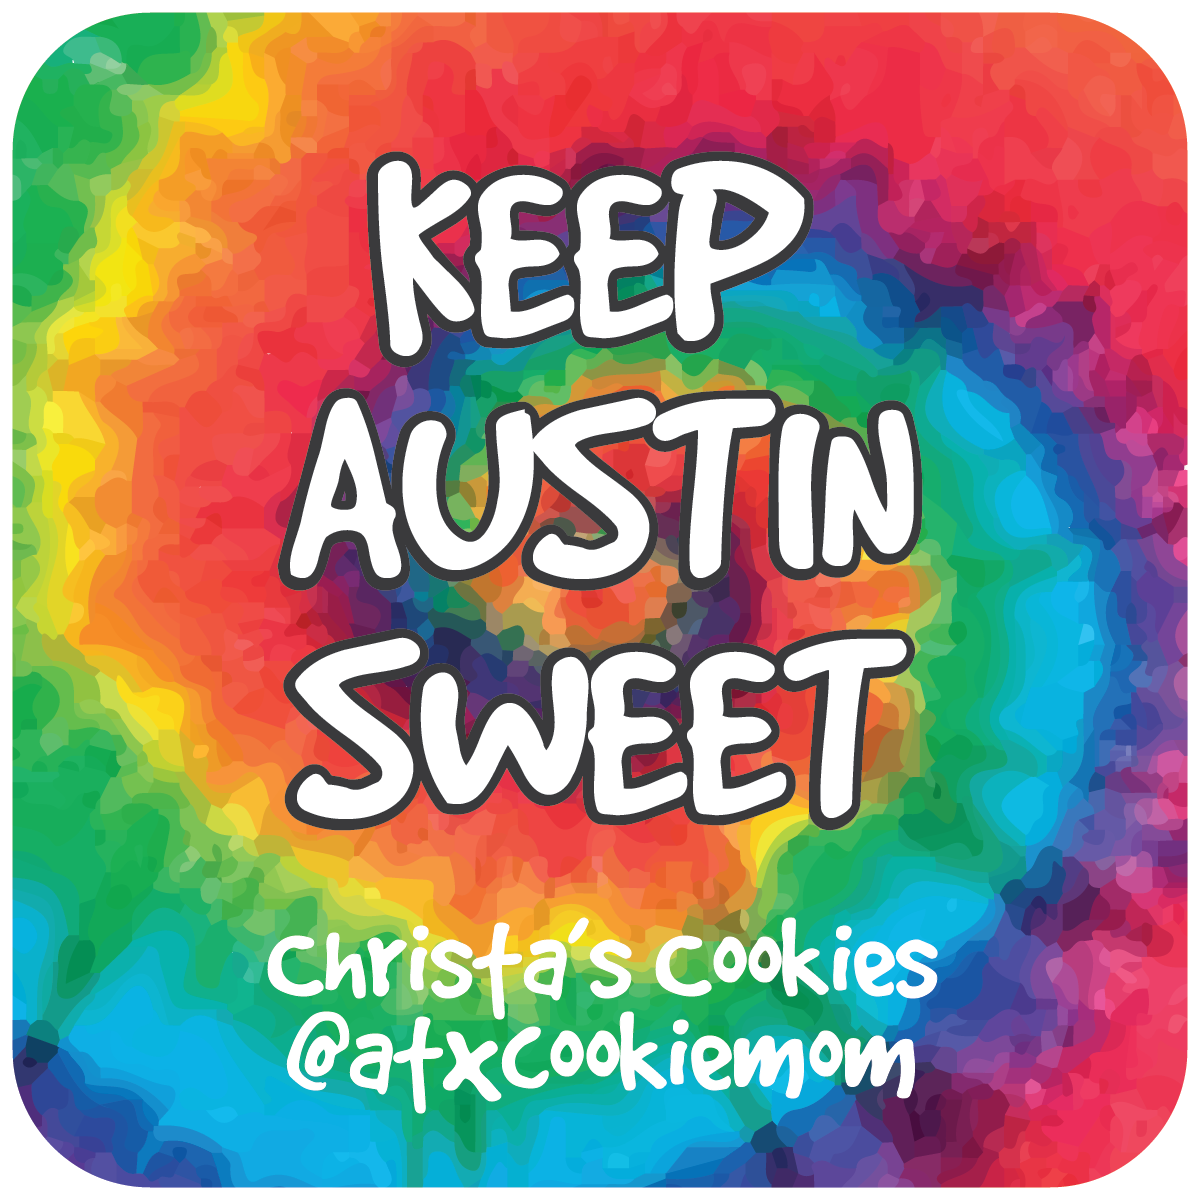 Howell_Christa'sCookiesFinalPNG-01 (1)